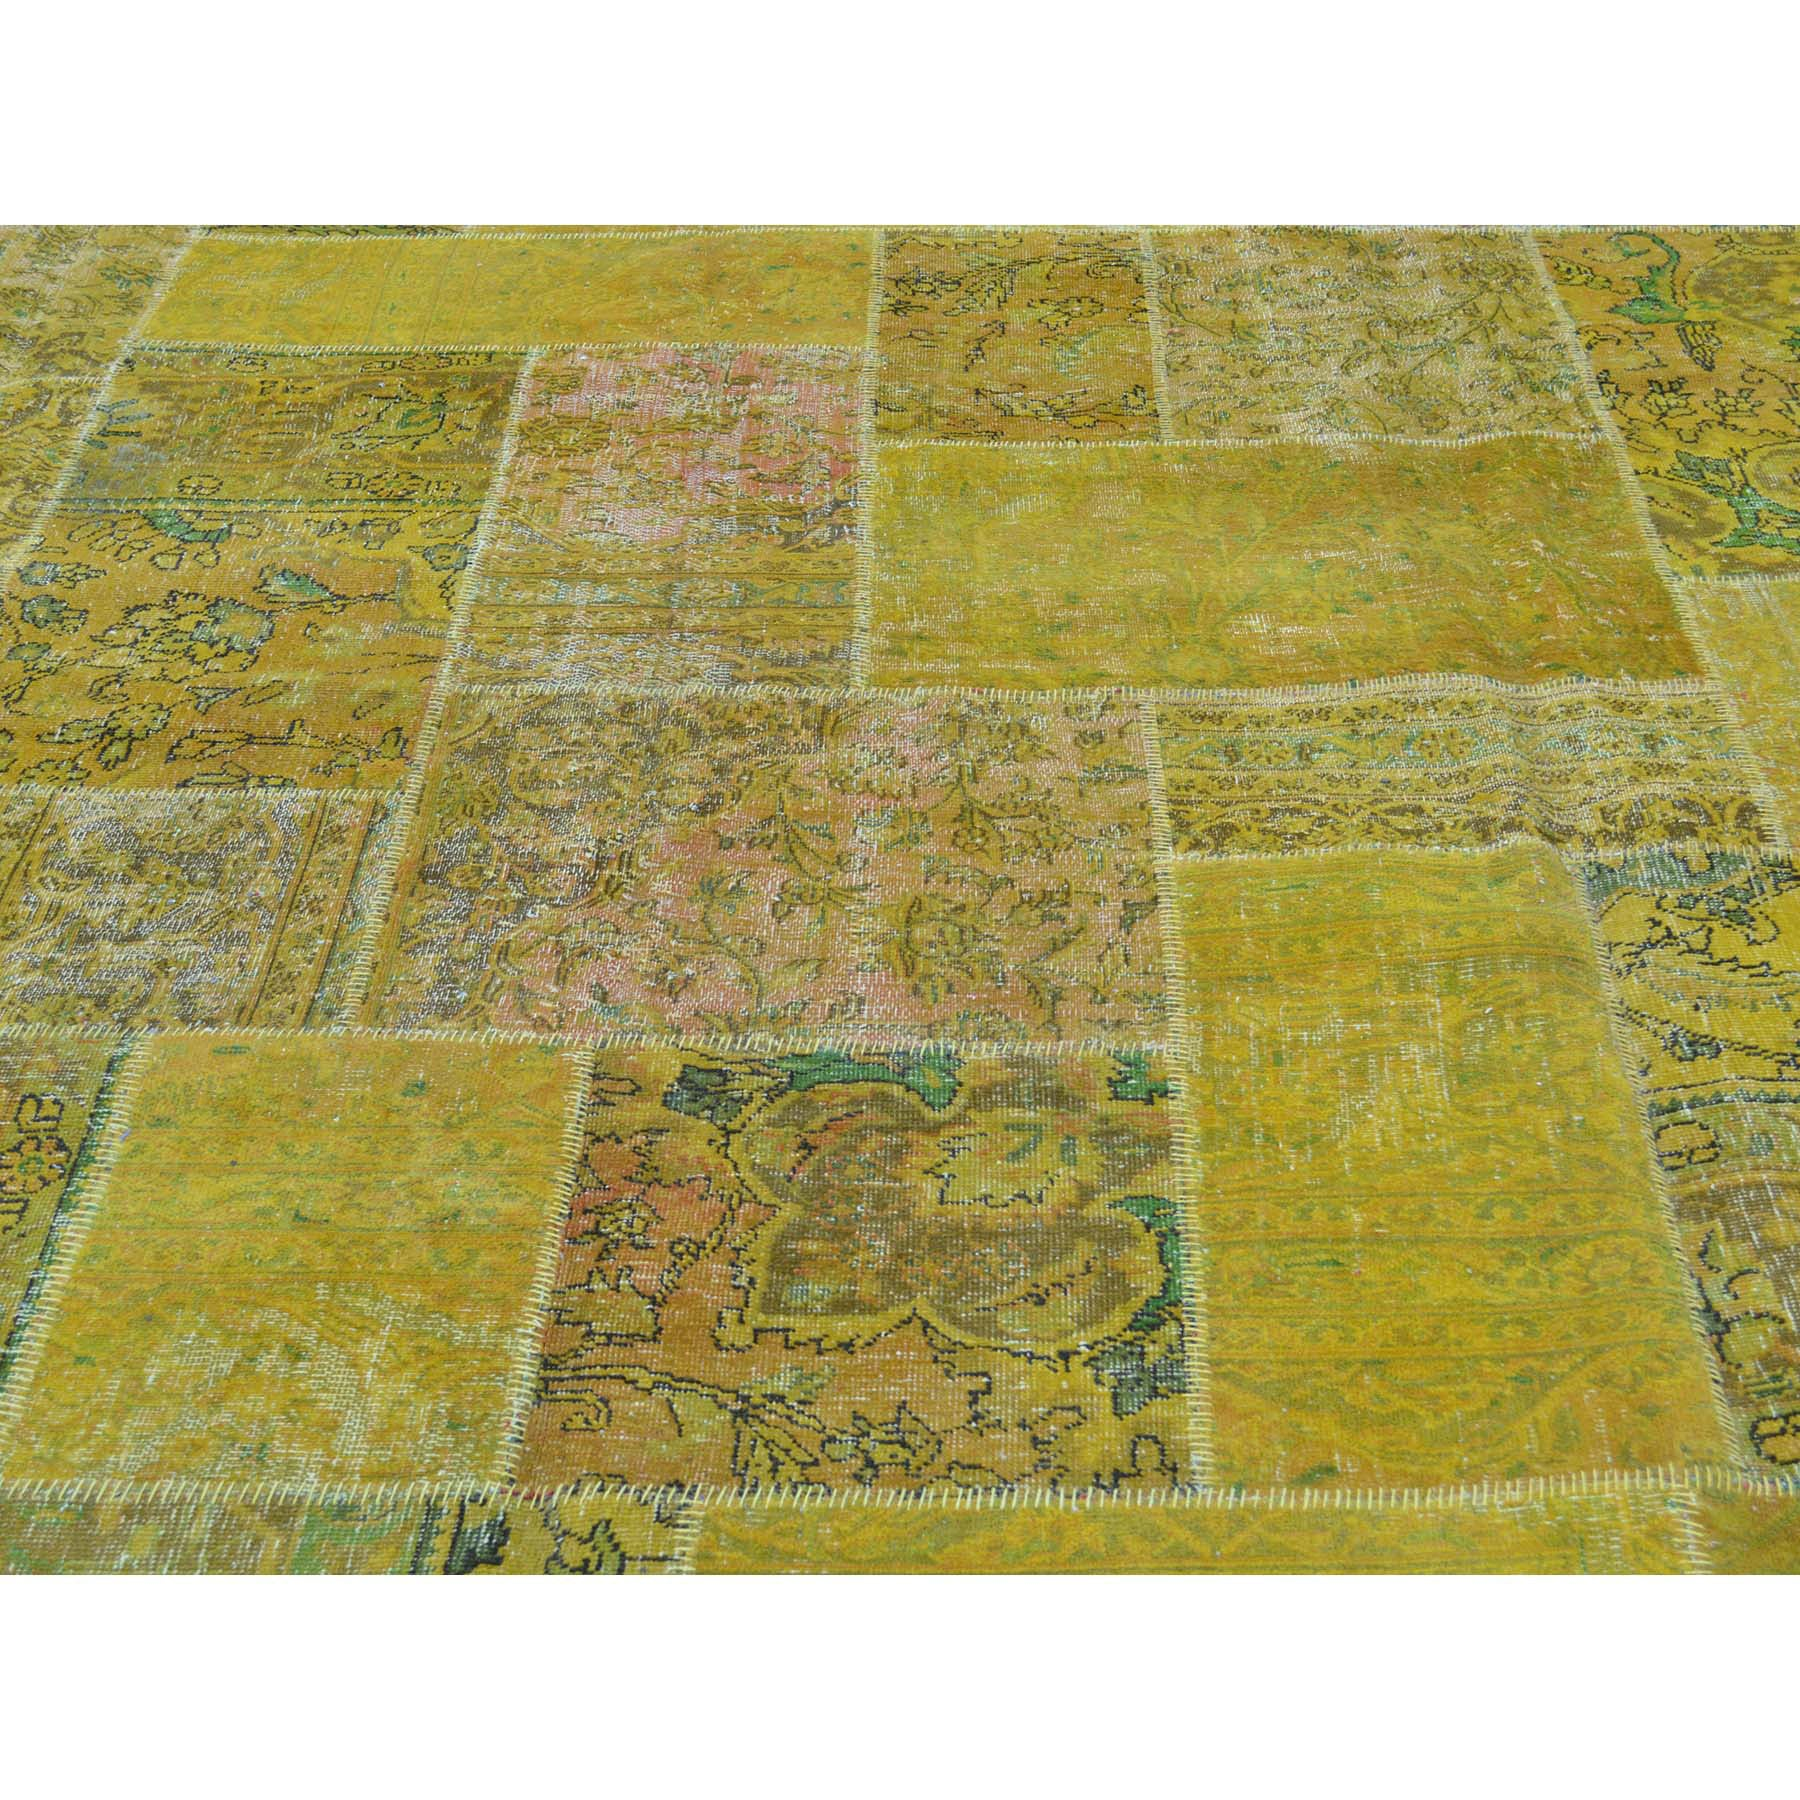 "Handmade Overdyed & Vintage Rectangle Rug > Design# SH28458 > Size: 13'-9"" x 17'-5"" [ONLINE ONLY]"